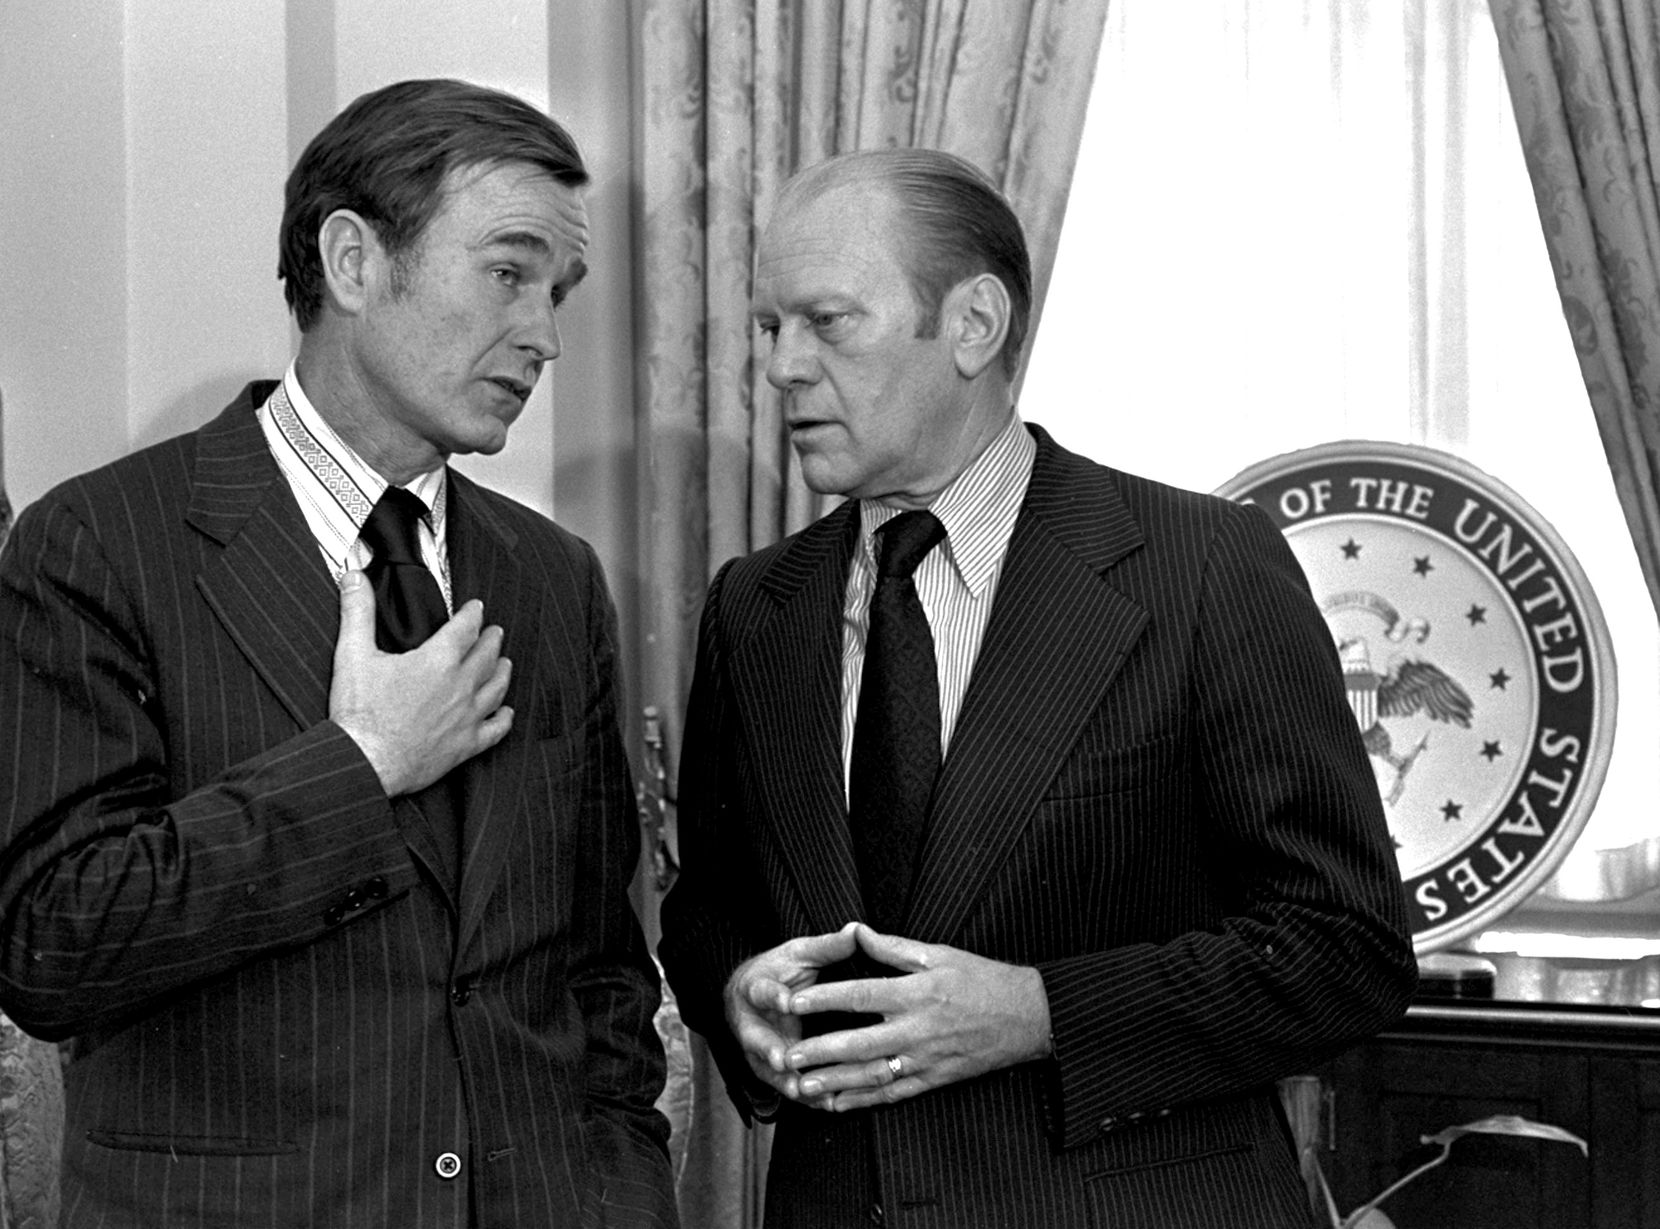 Republican National Chairman George H.W. Bush (left) chats with Vice President Gerald Ford in Washington in December 1973. Ford went on to pick up the pieces of Richard Nixon's scandal-shattered White House as the 38th and only unelected president in America's history.